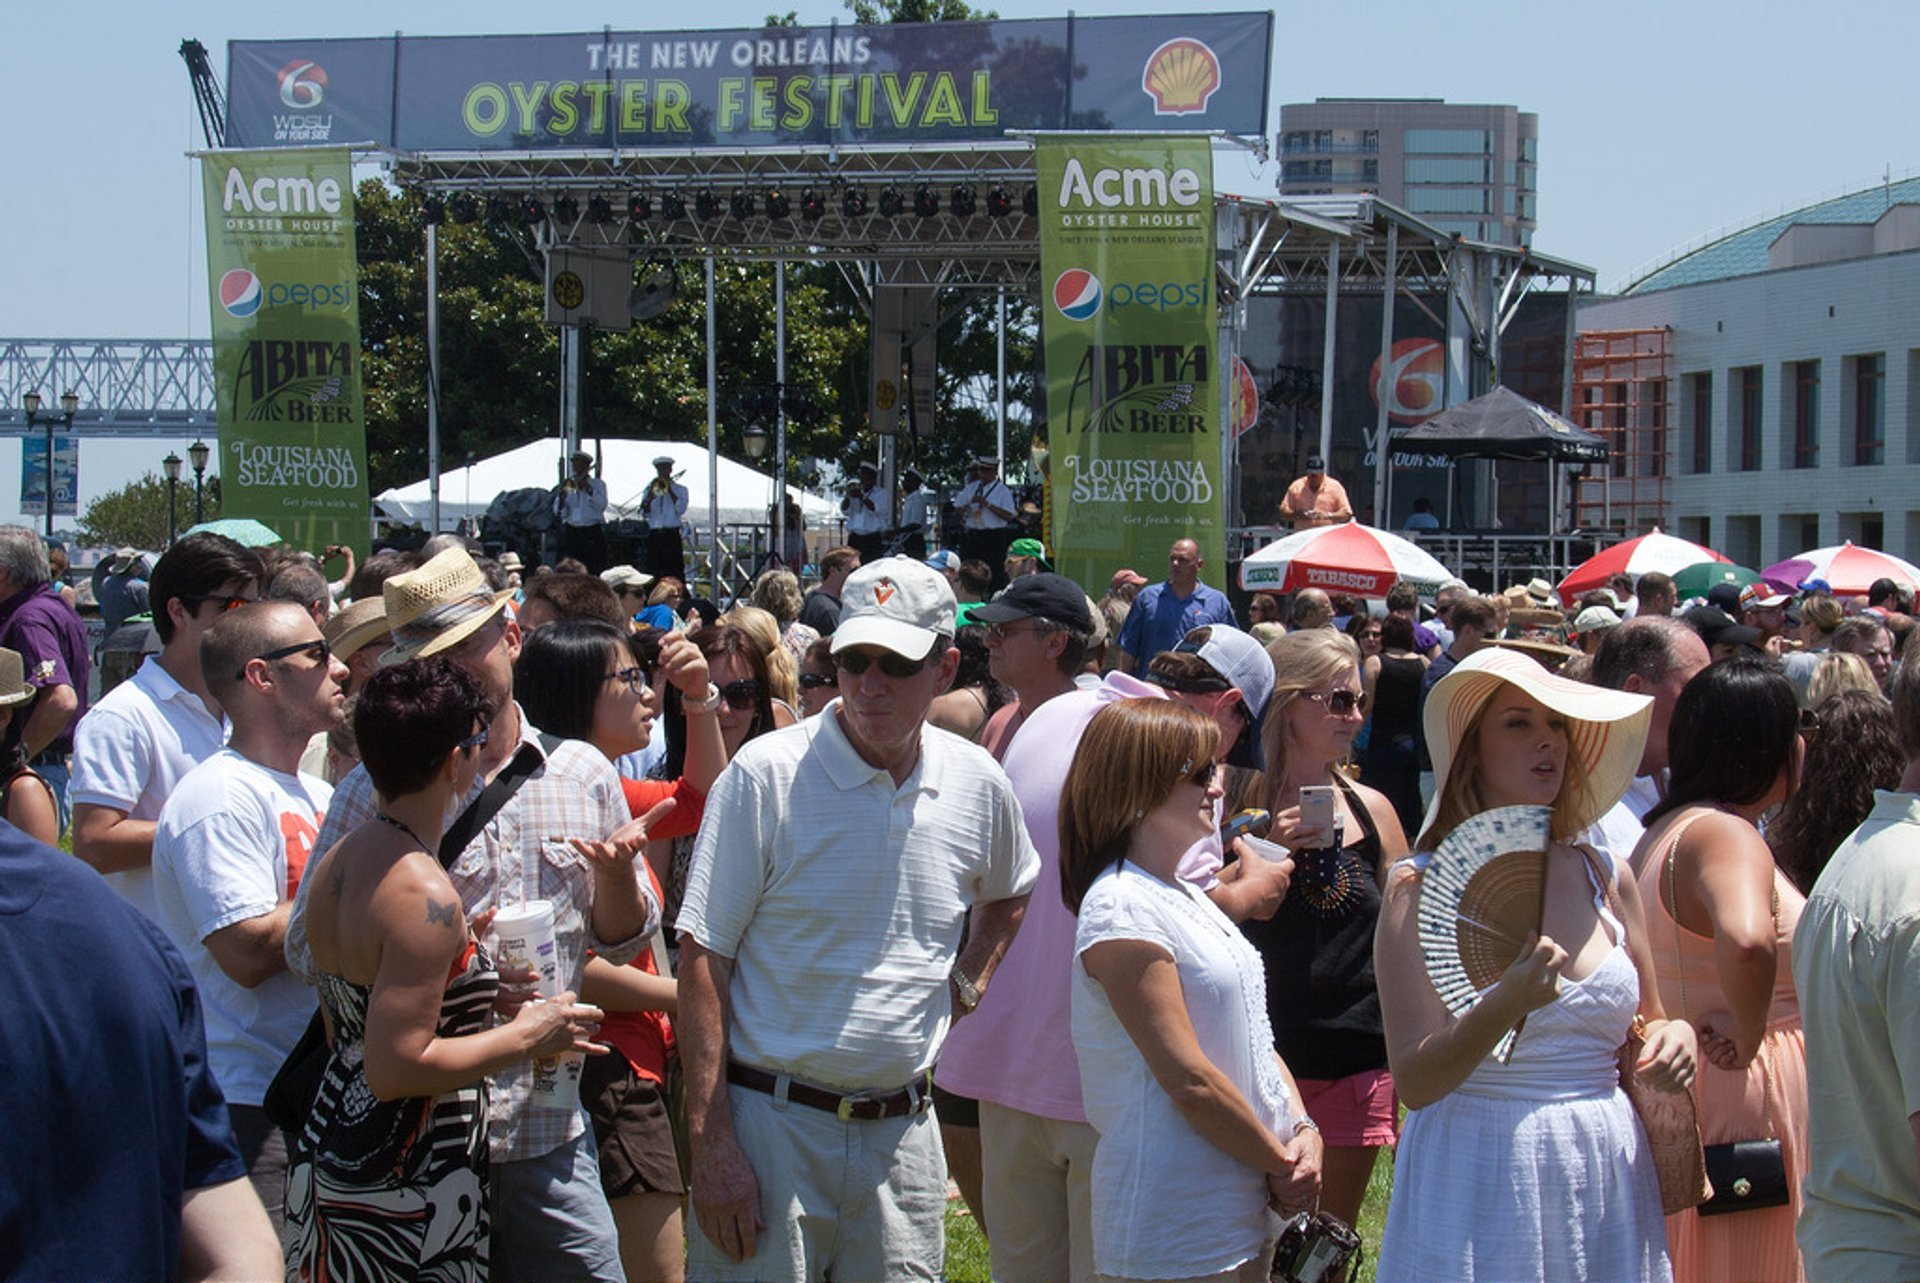 Best time for New Orleans Oyster Festival in New Orleans 2020